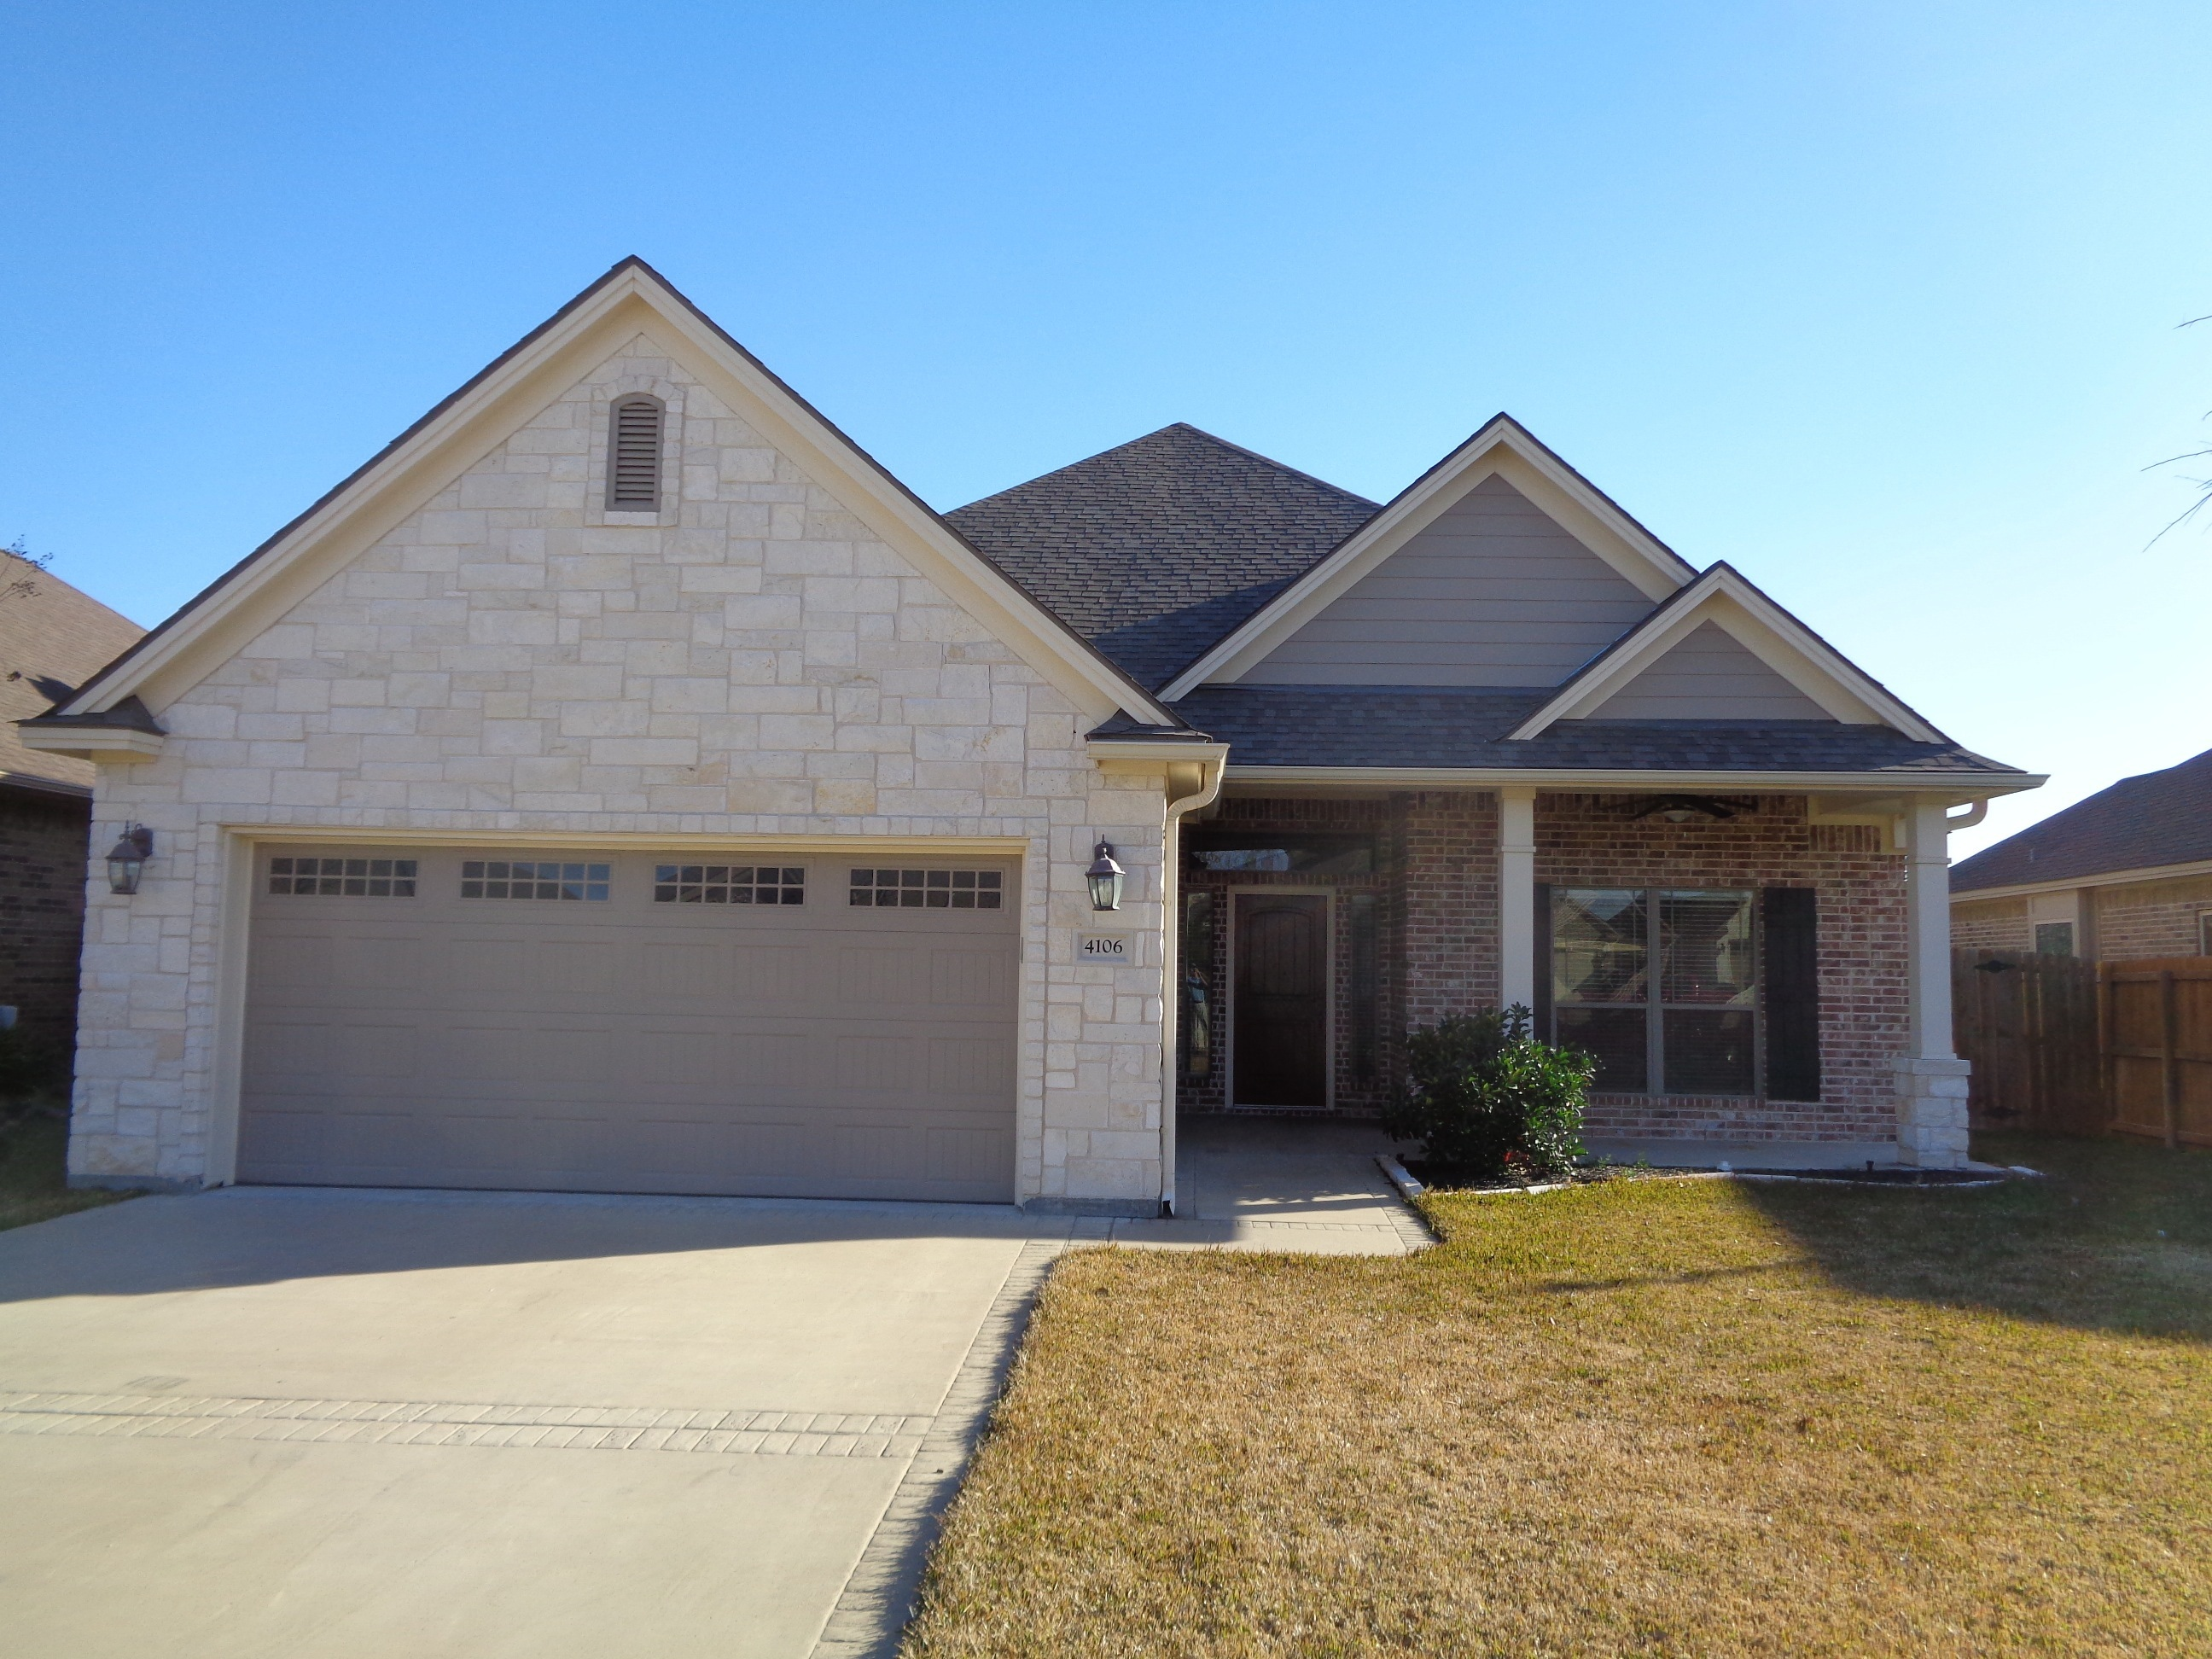 Castle rock abode for lease available jan 1 2017 for Magnolia homes cypress grove